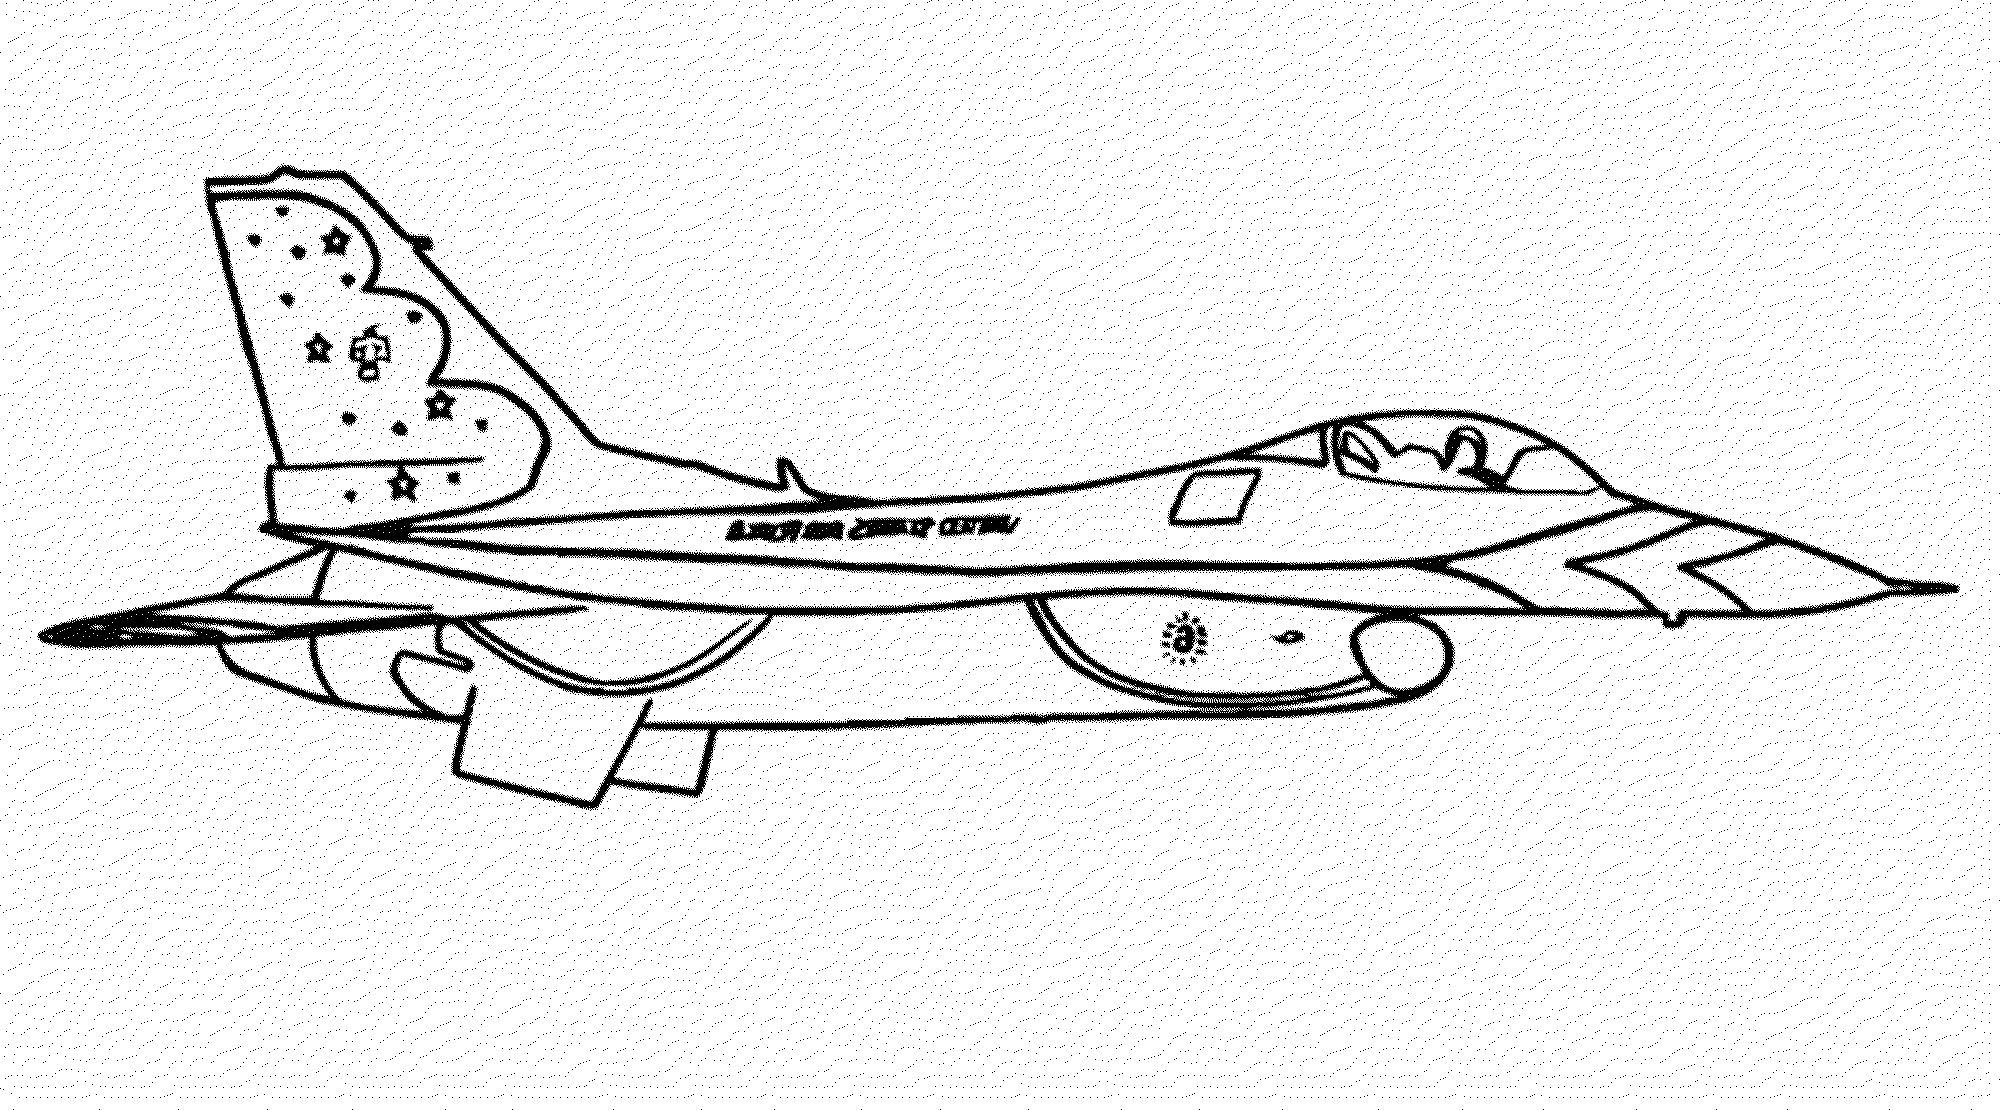 coloring page airplane 10 free airplane coloring pages for kids coloring page airplane